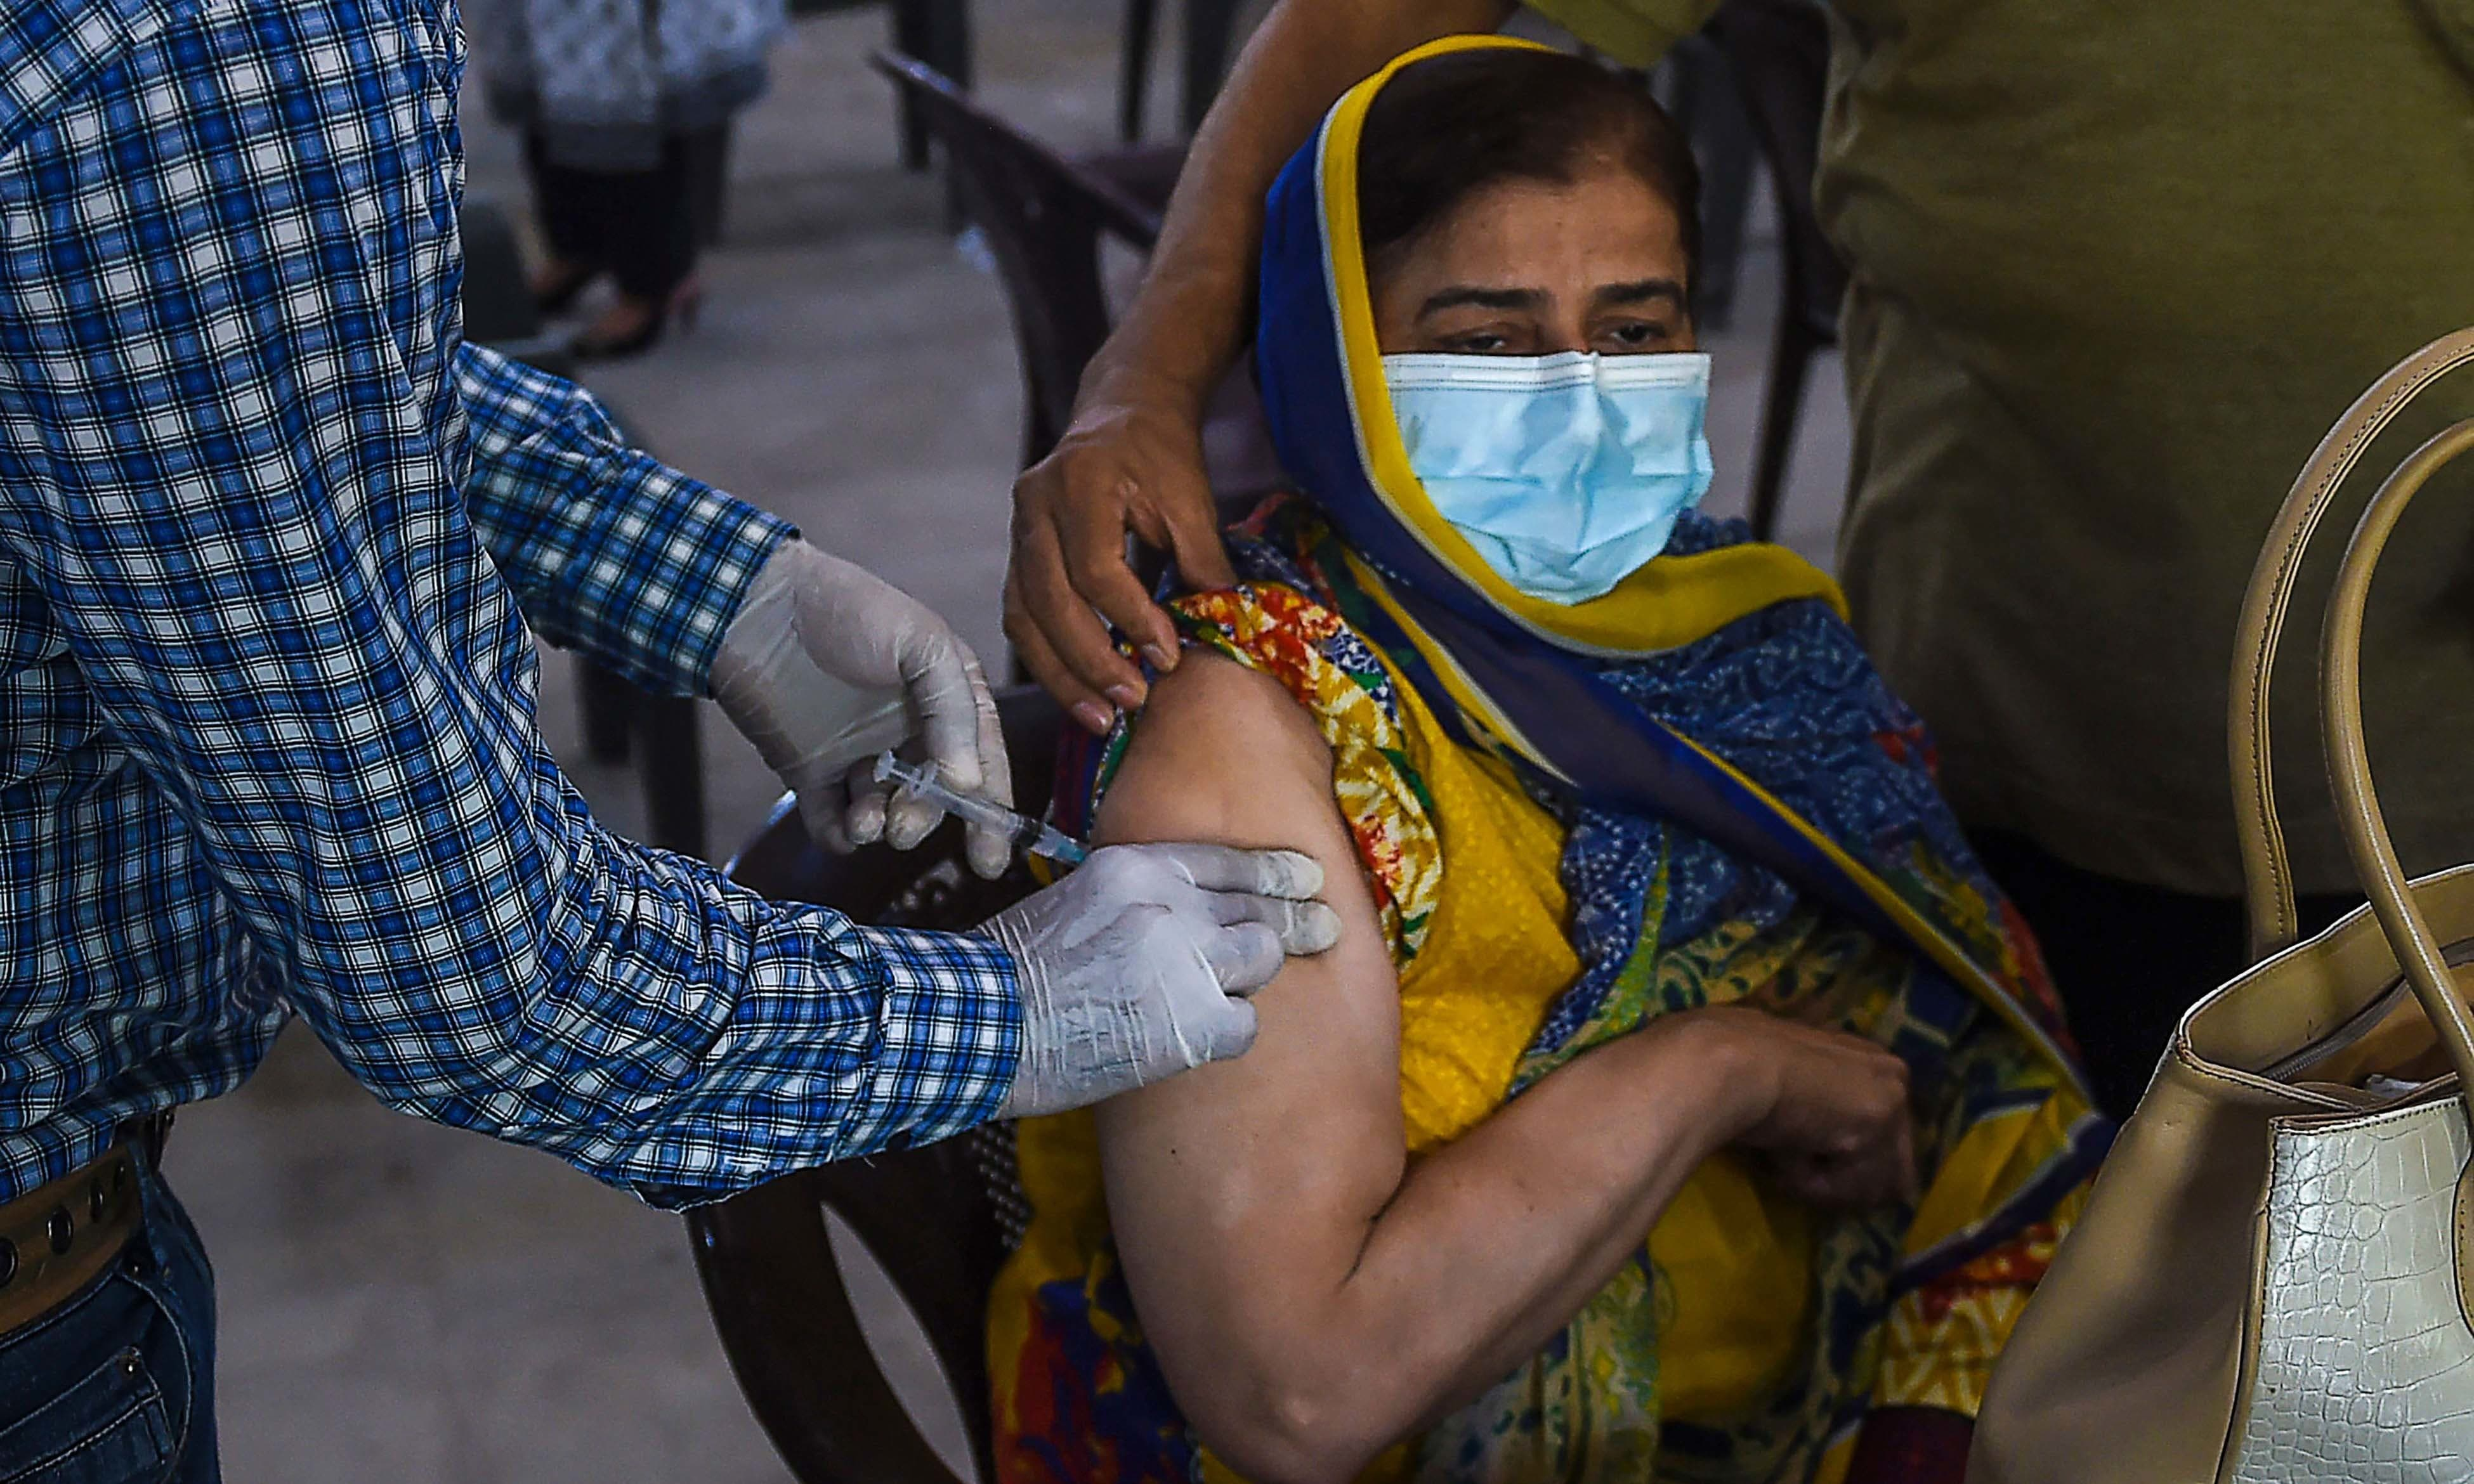 A woman receives a dose of the Covid-19 coronavirus Sinopharm vaccine at a vaccination camp in Karachi on May 25. — AFP